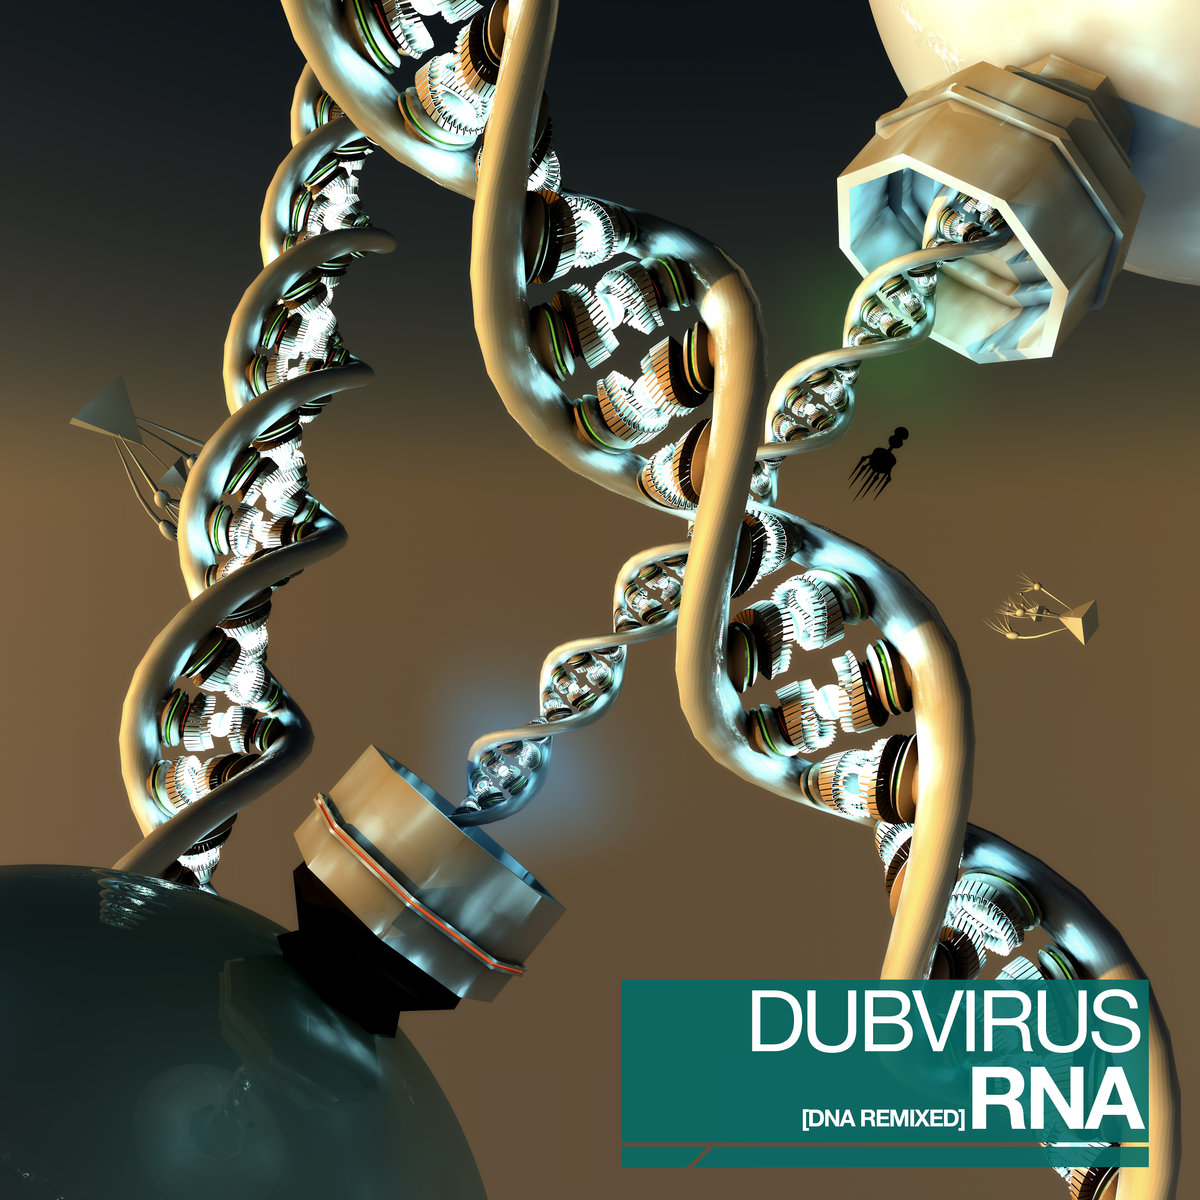 Dubvirus - Breathe (Atomic Reactor Remix) @ 'RNA (DNA Remixed)' album (bass, dubvirus)